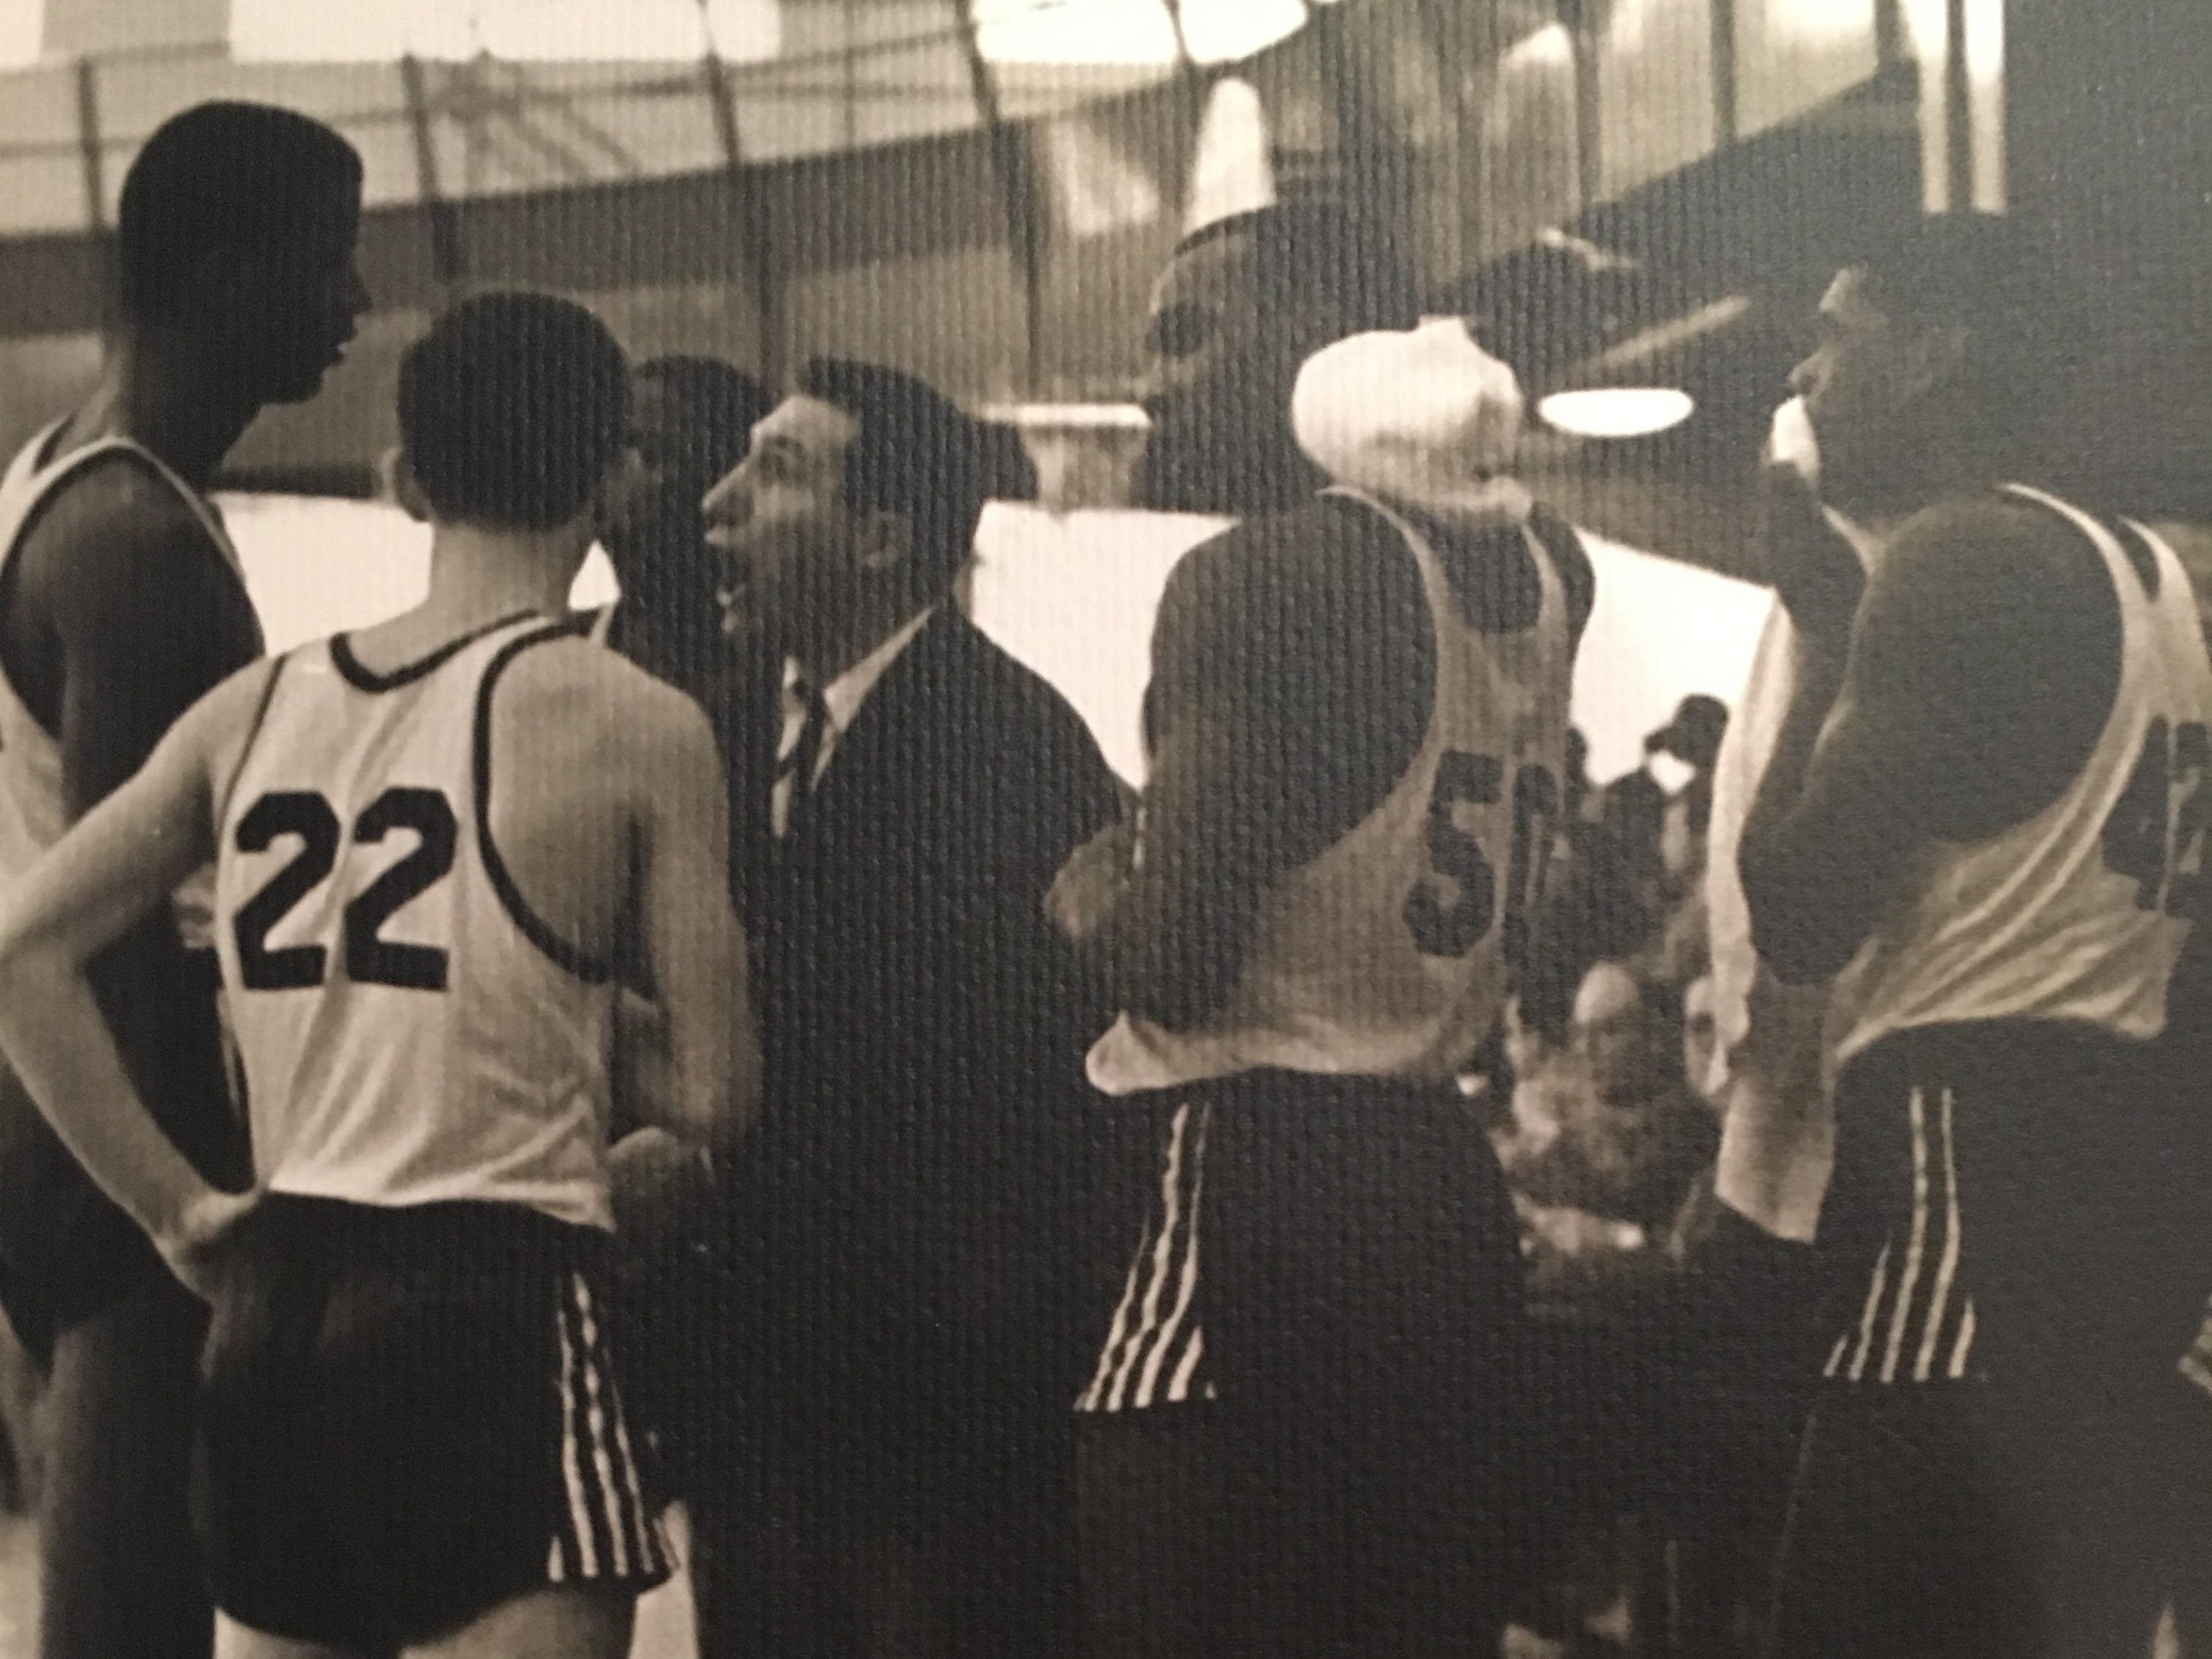 """Sam """"Sonny"""" Taub, former basketball coach and athletic director at Detroit Mumford High School who guided the team to the state semifinals in 1969. April 13. He was 89."""